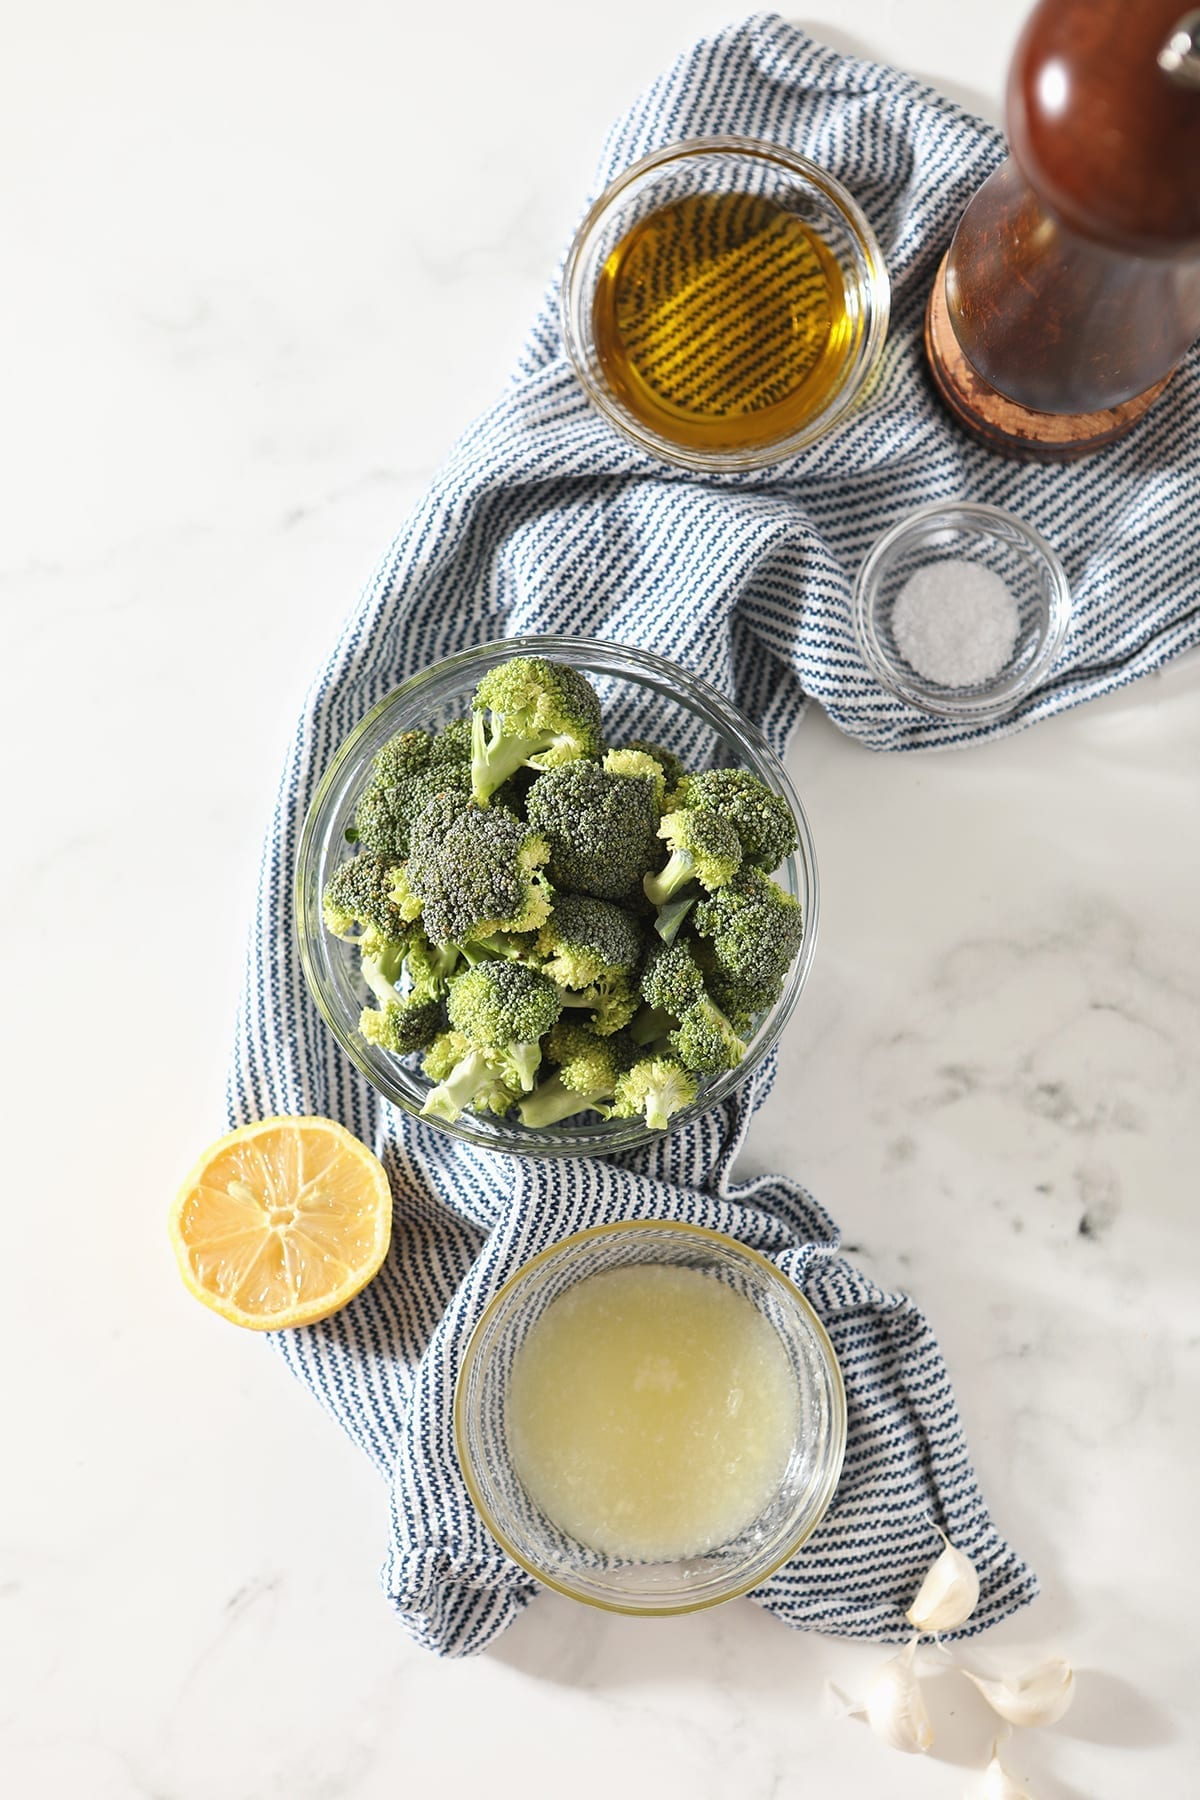 Broccoli, lemon juice, salt, pepper and oil are shown in bowls on a blue and white striped towel on marble